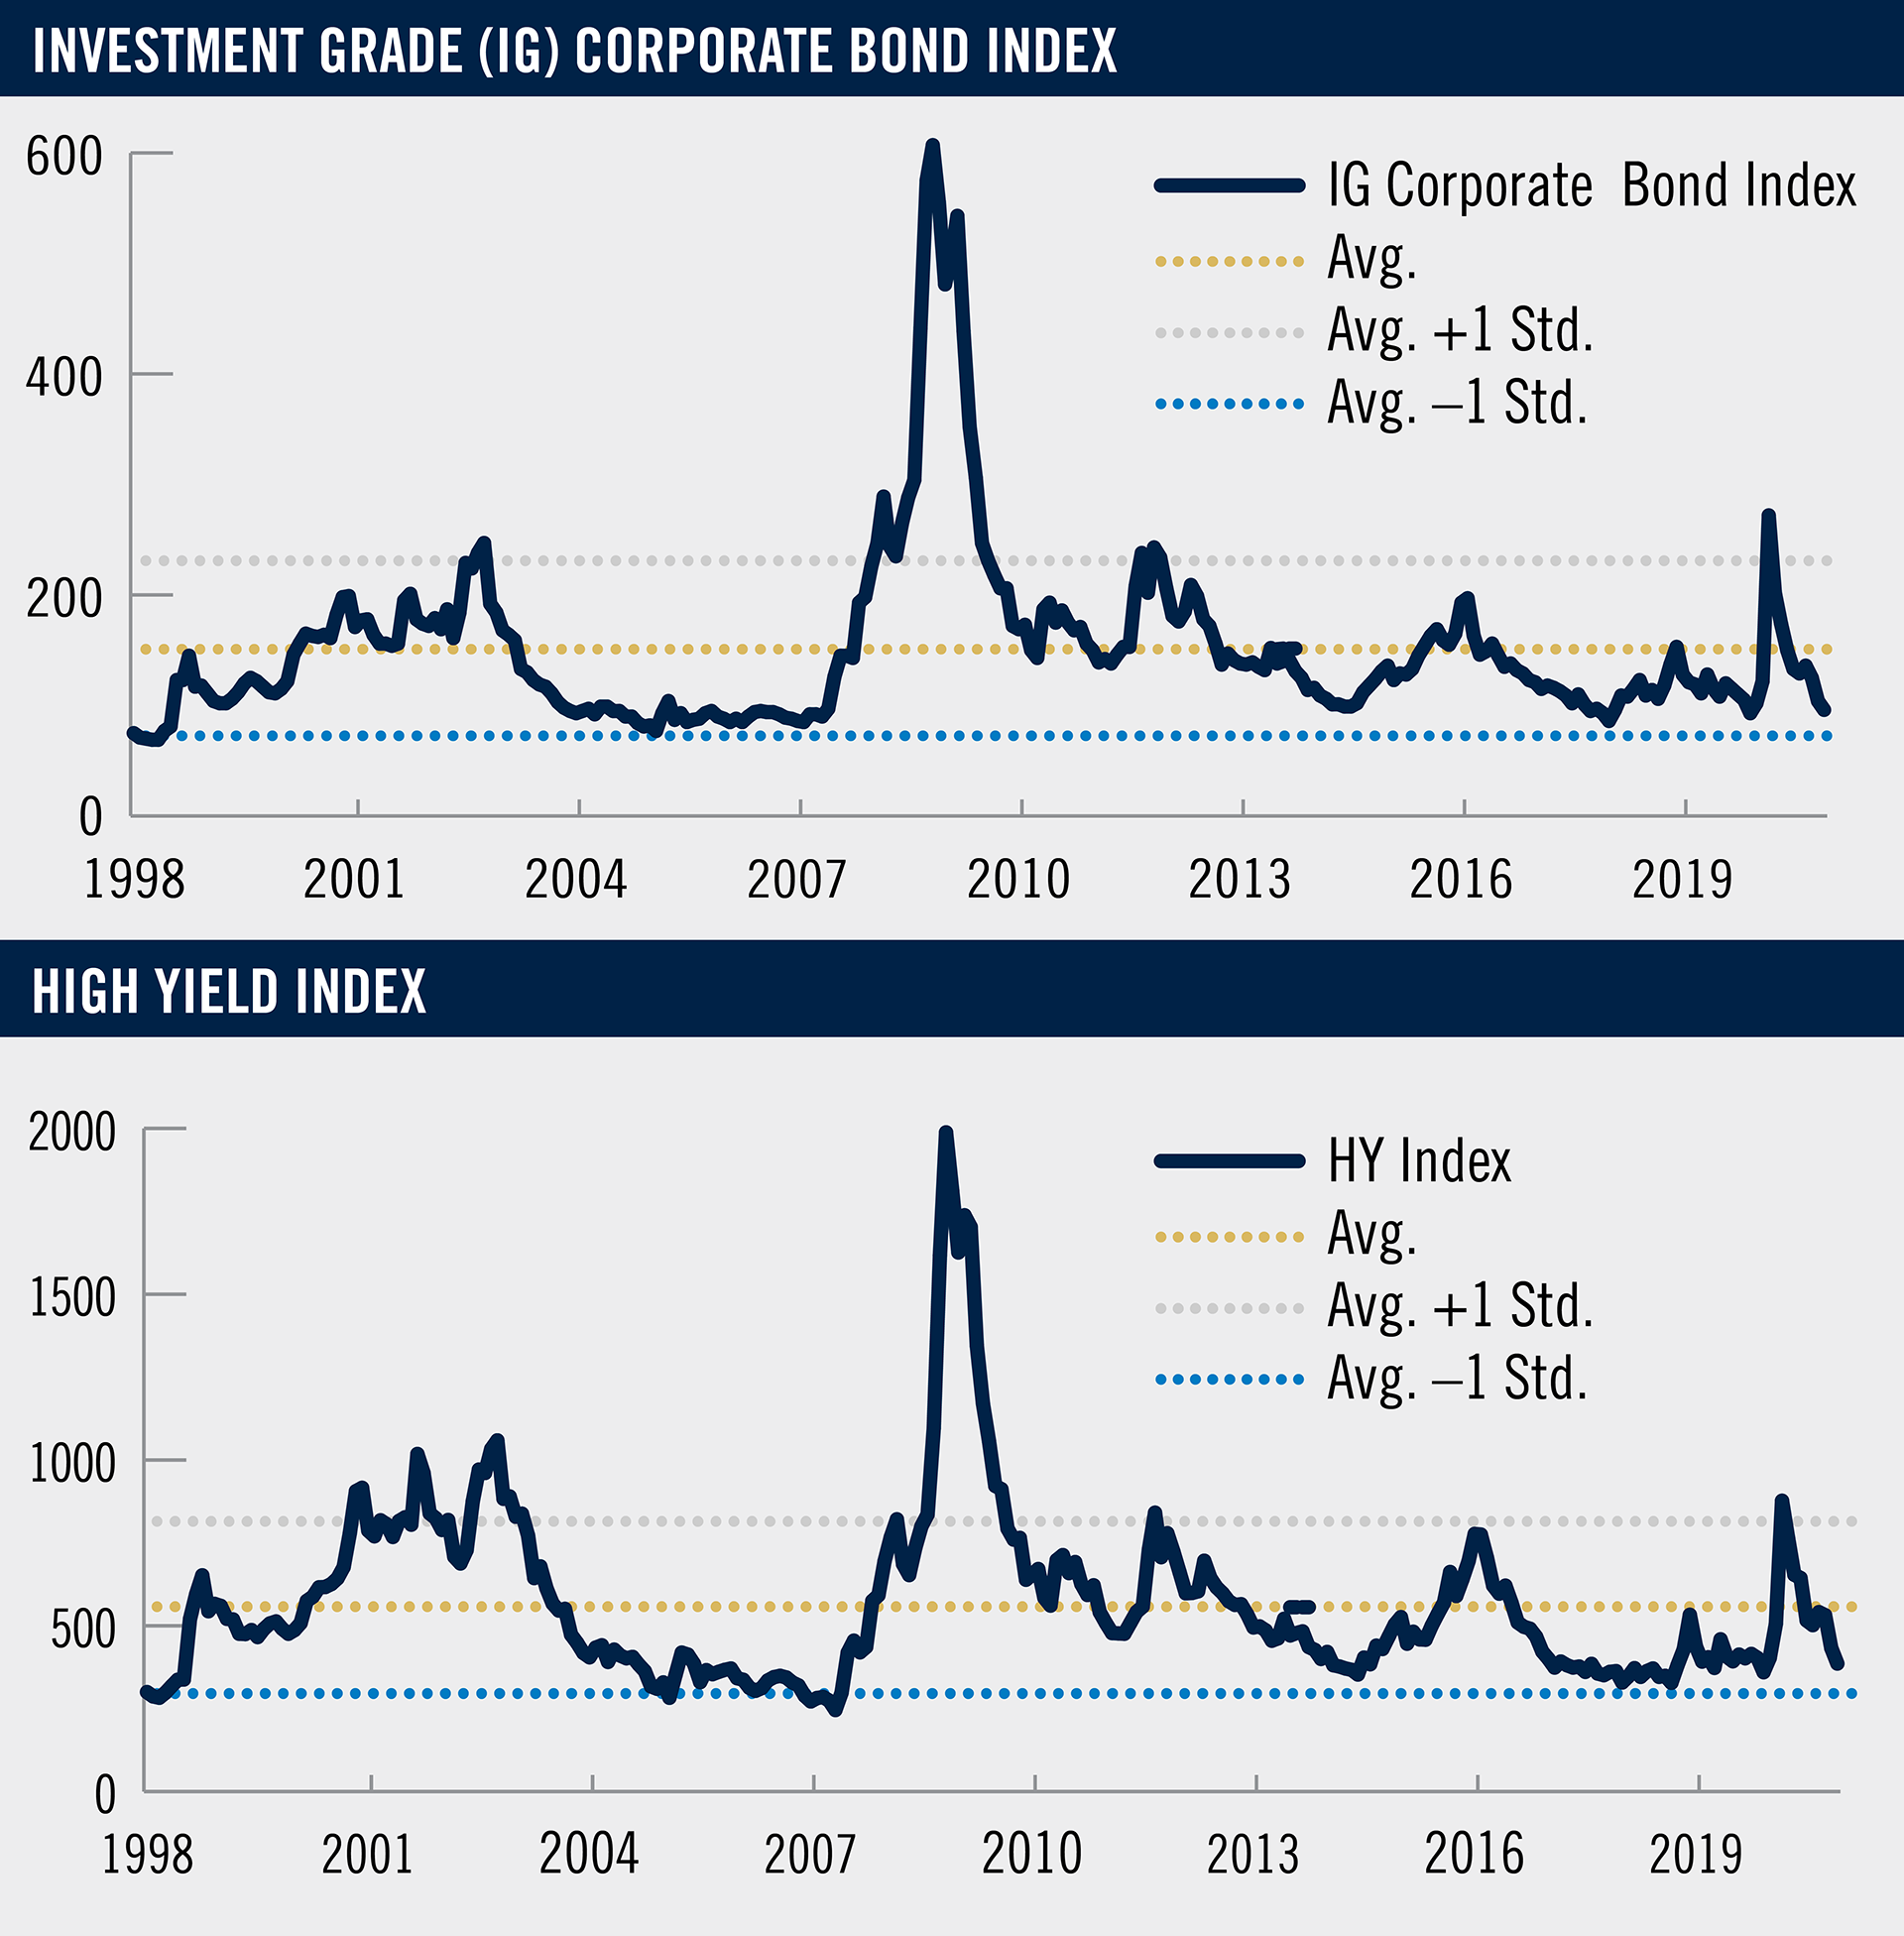 The charts show the changes in the spreads for the investment grade corporate bonds  and high yield bonds with spreads back within their historical ranges.